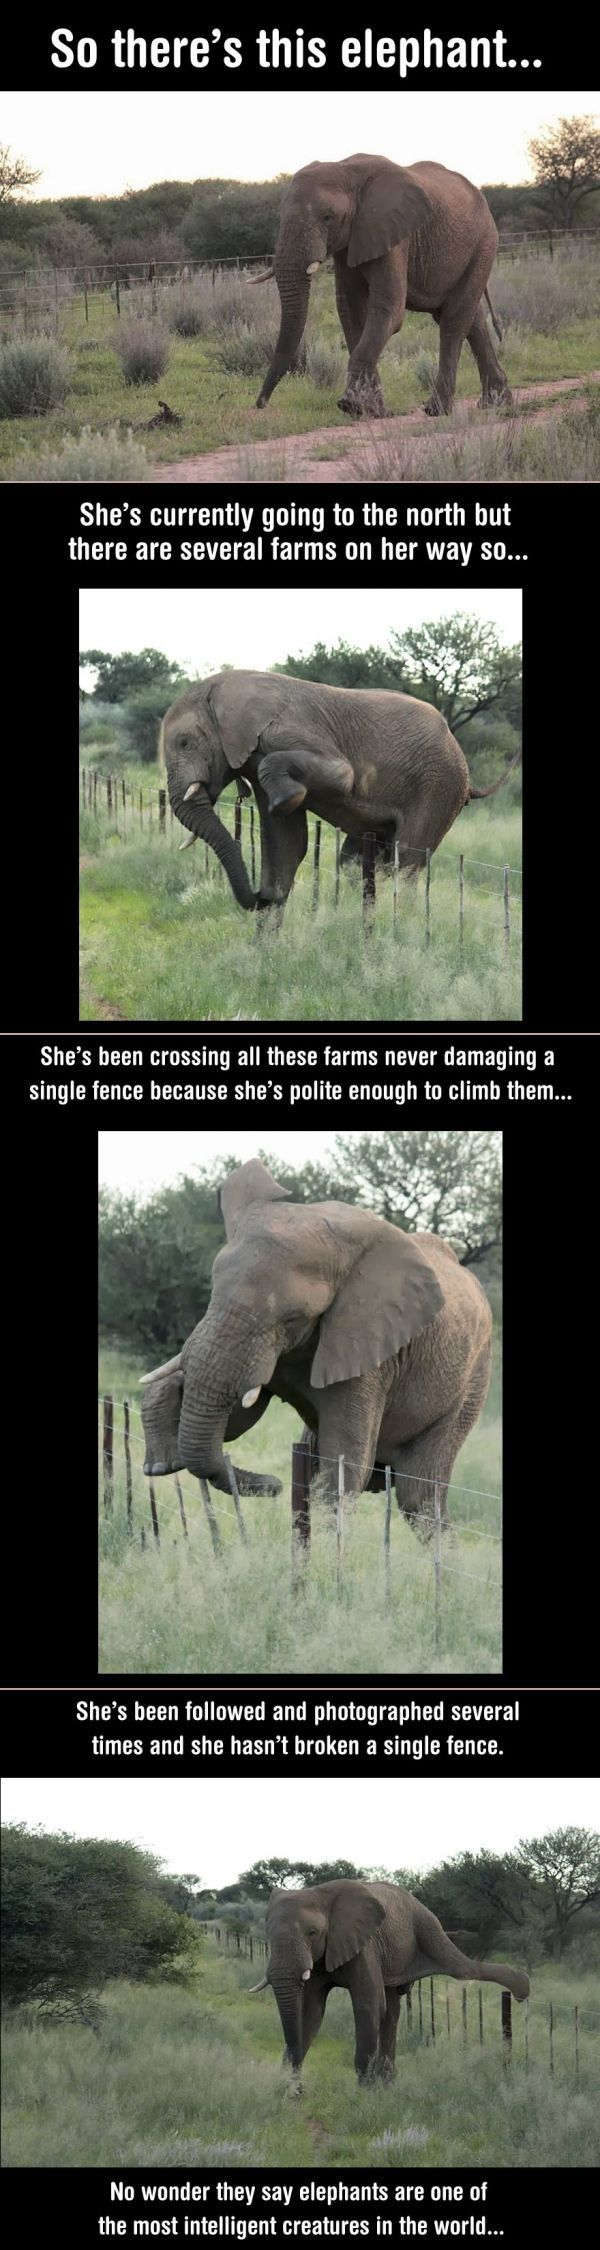 Elephant - Take note people! This elephant is smarter, and more considerate than some humans ^_^